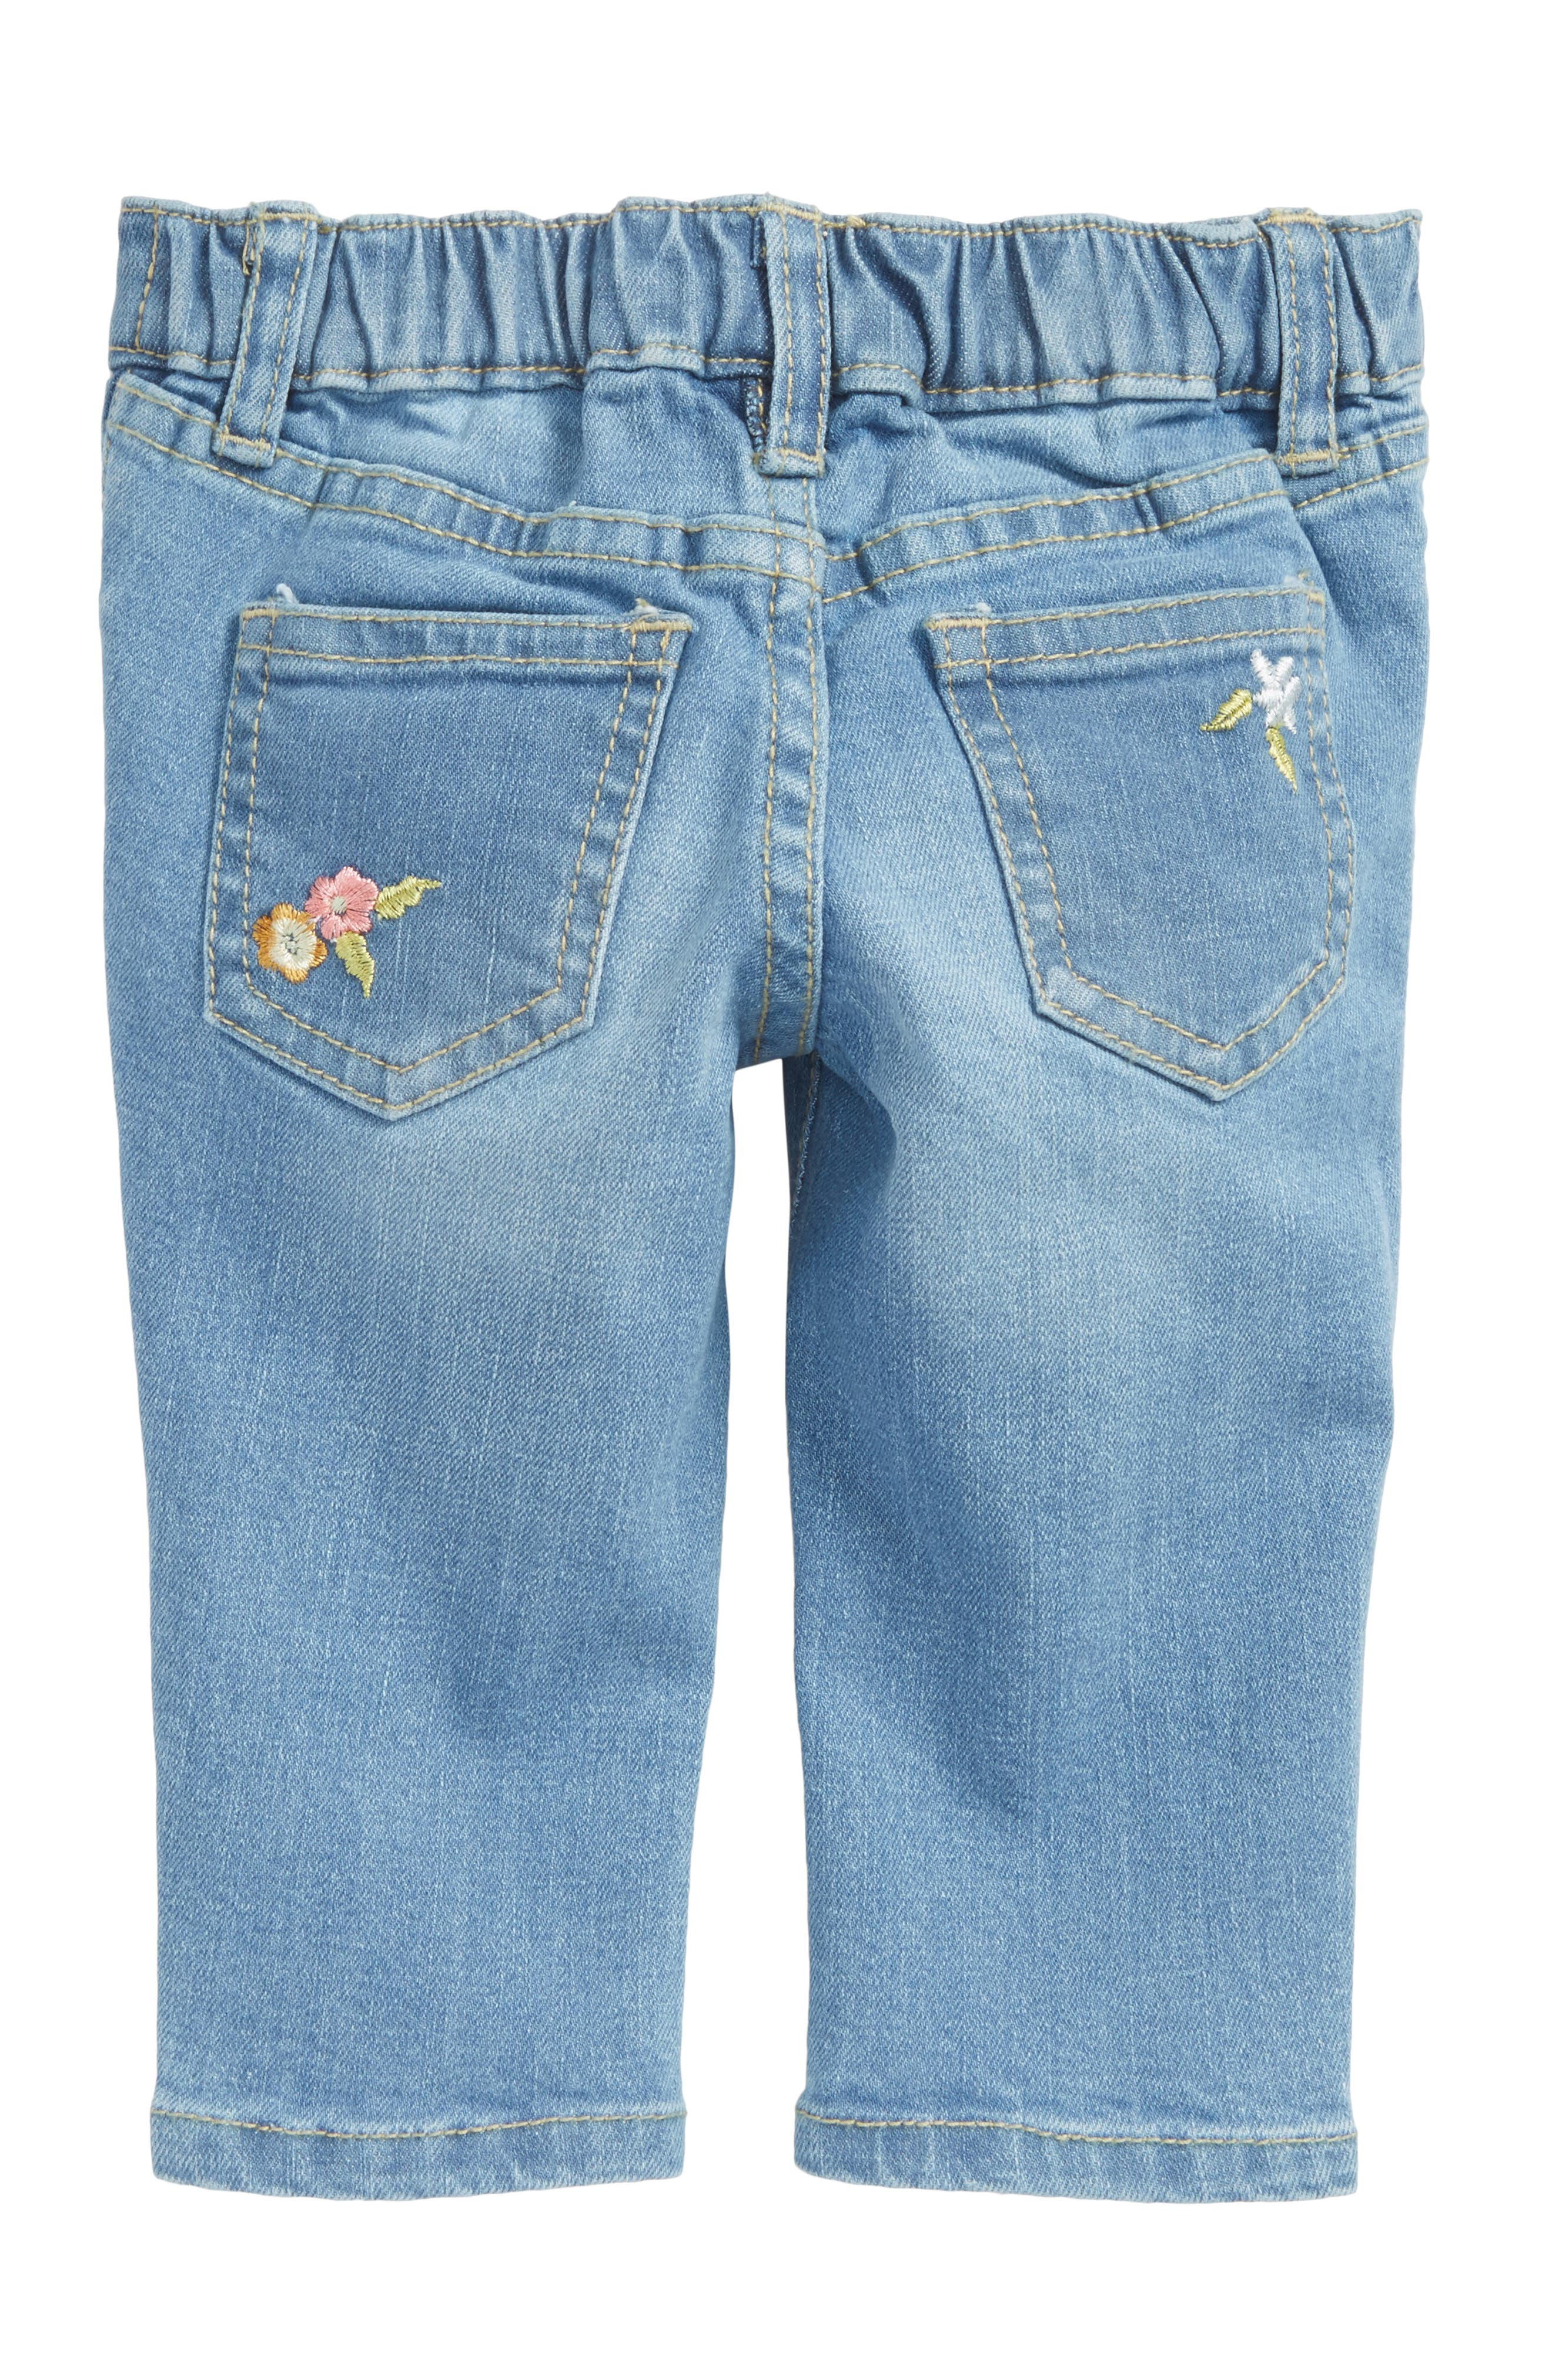 Alternate Image 2  - Peek Taylor Embroidered Jeans (Baby Girls)